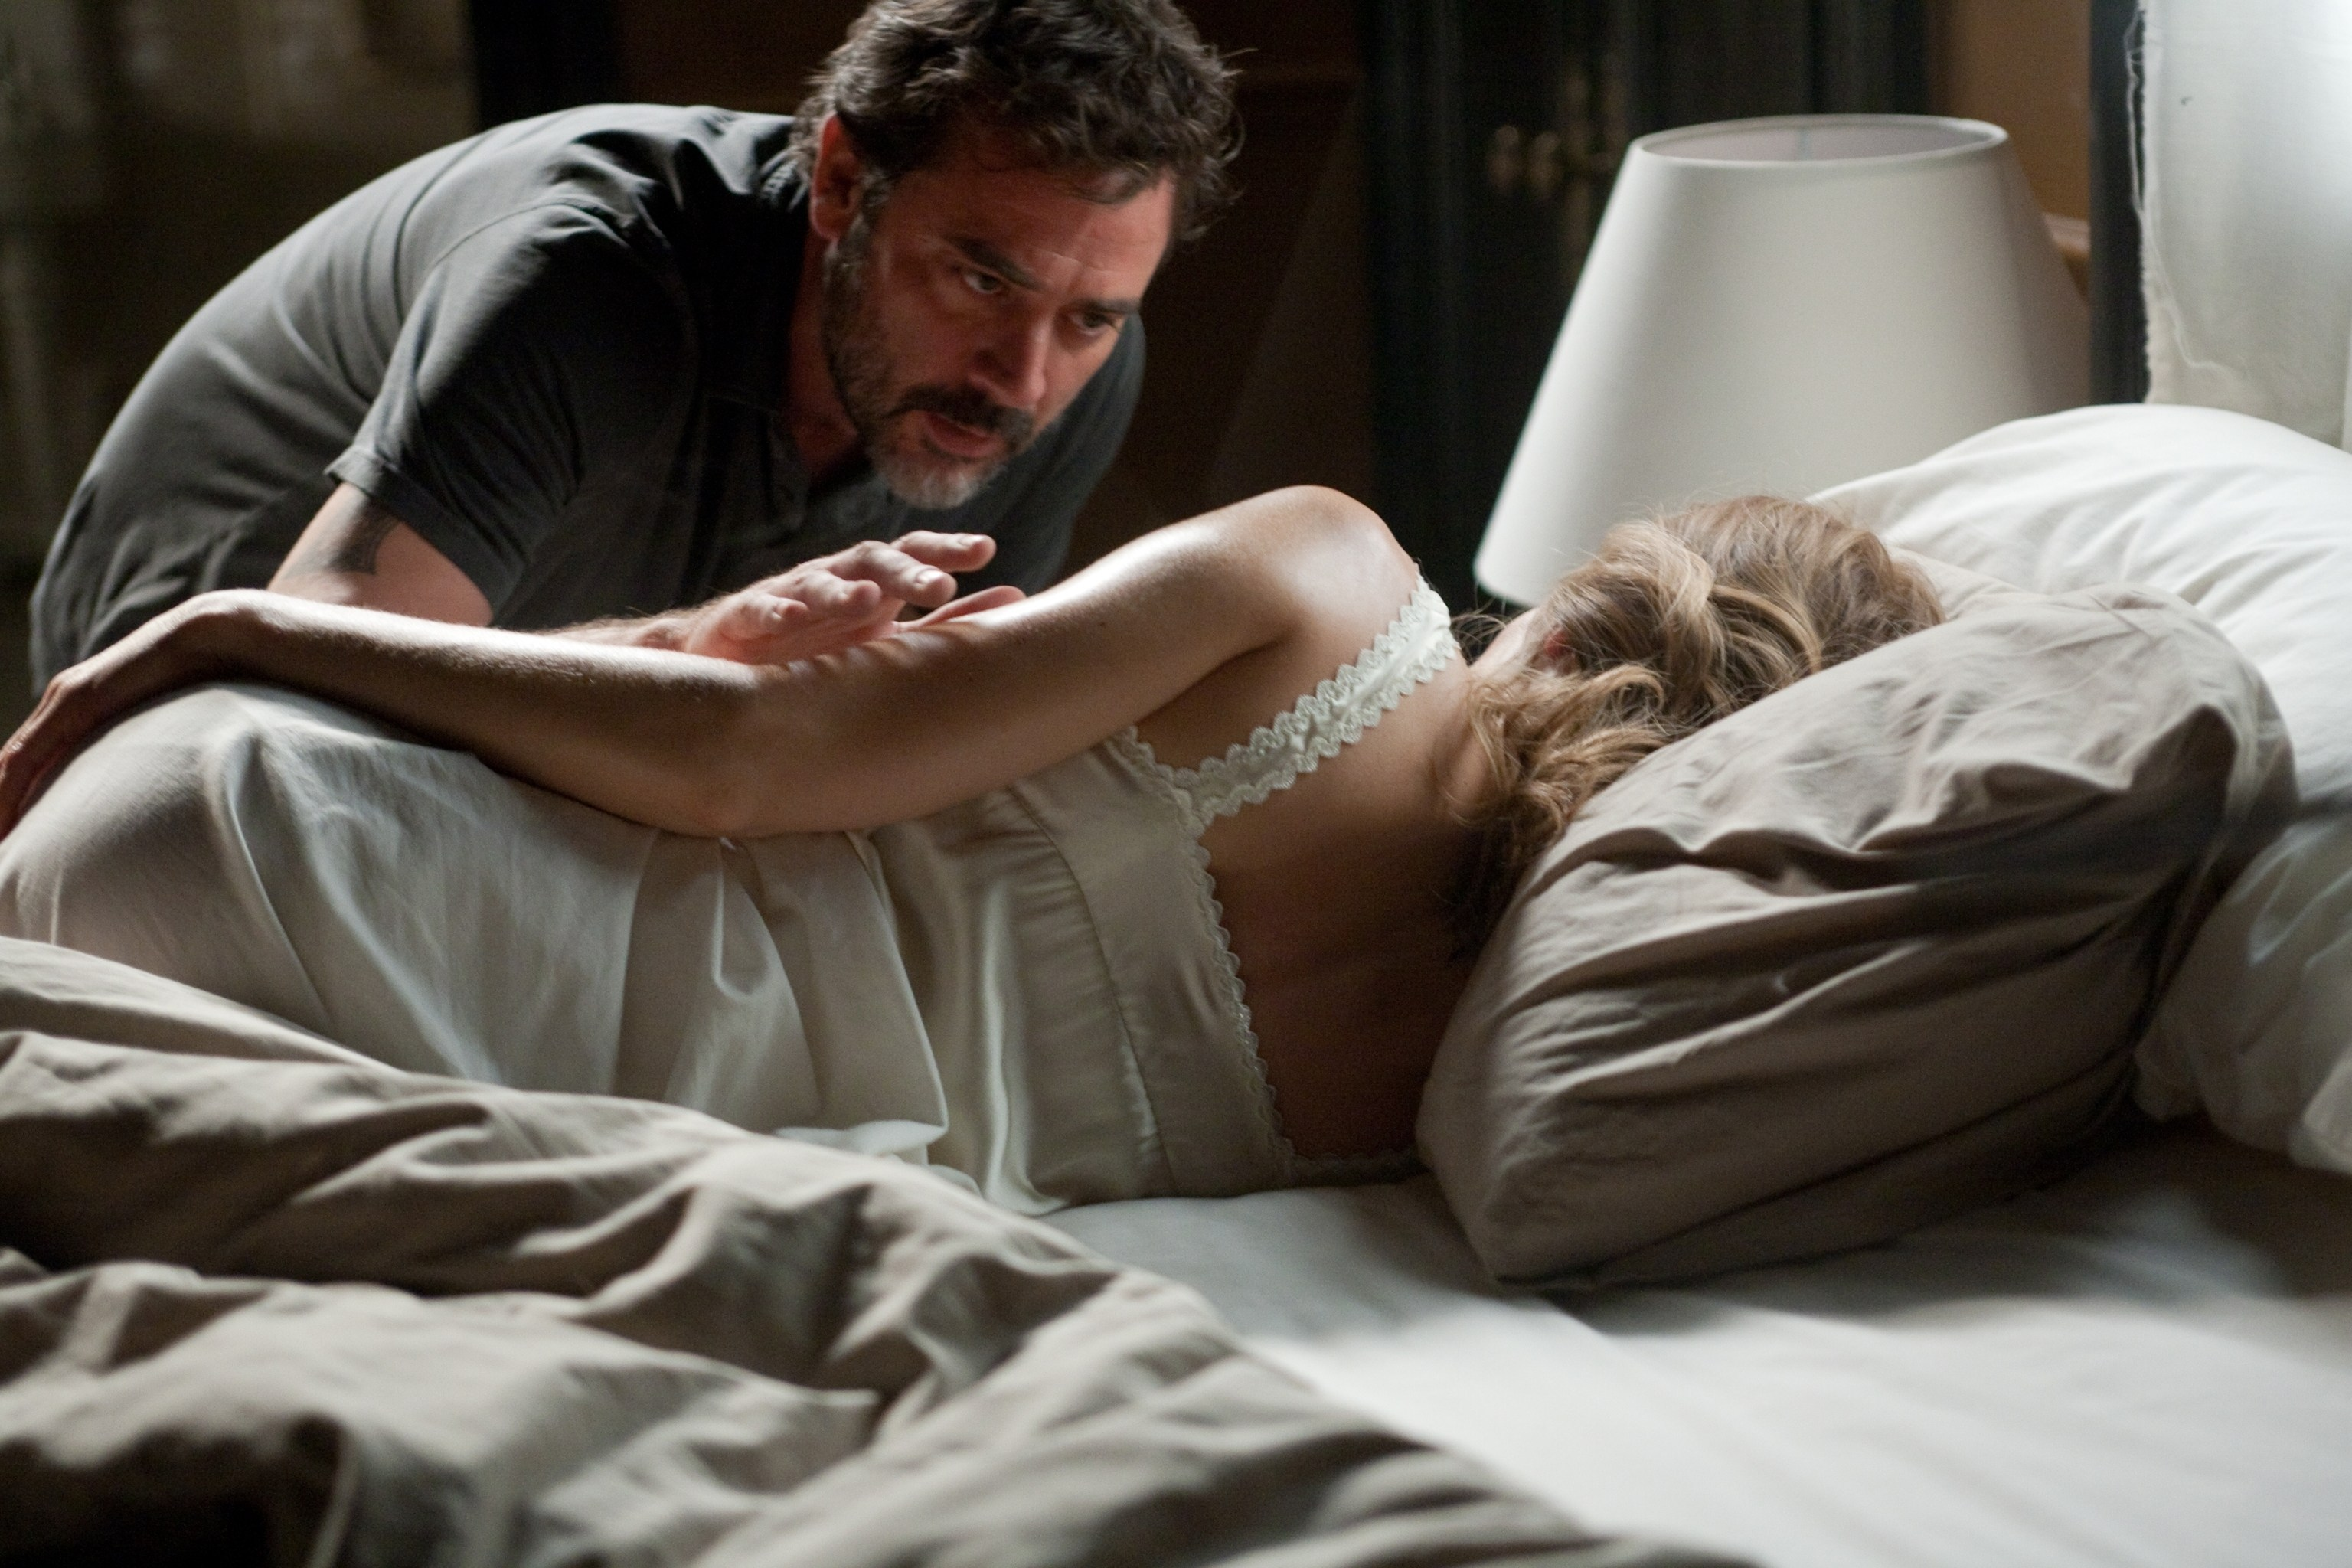 Creepy landlord Jeffrey Dean Morgan sneaks in on a sleeping Hilary Swank in The Resident (2011)